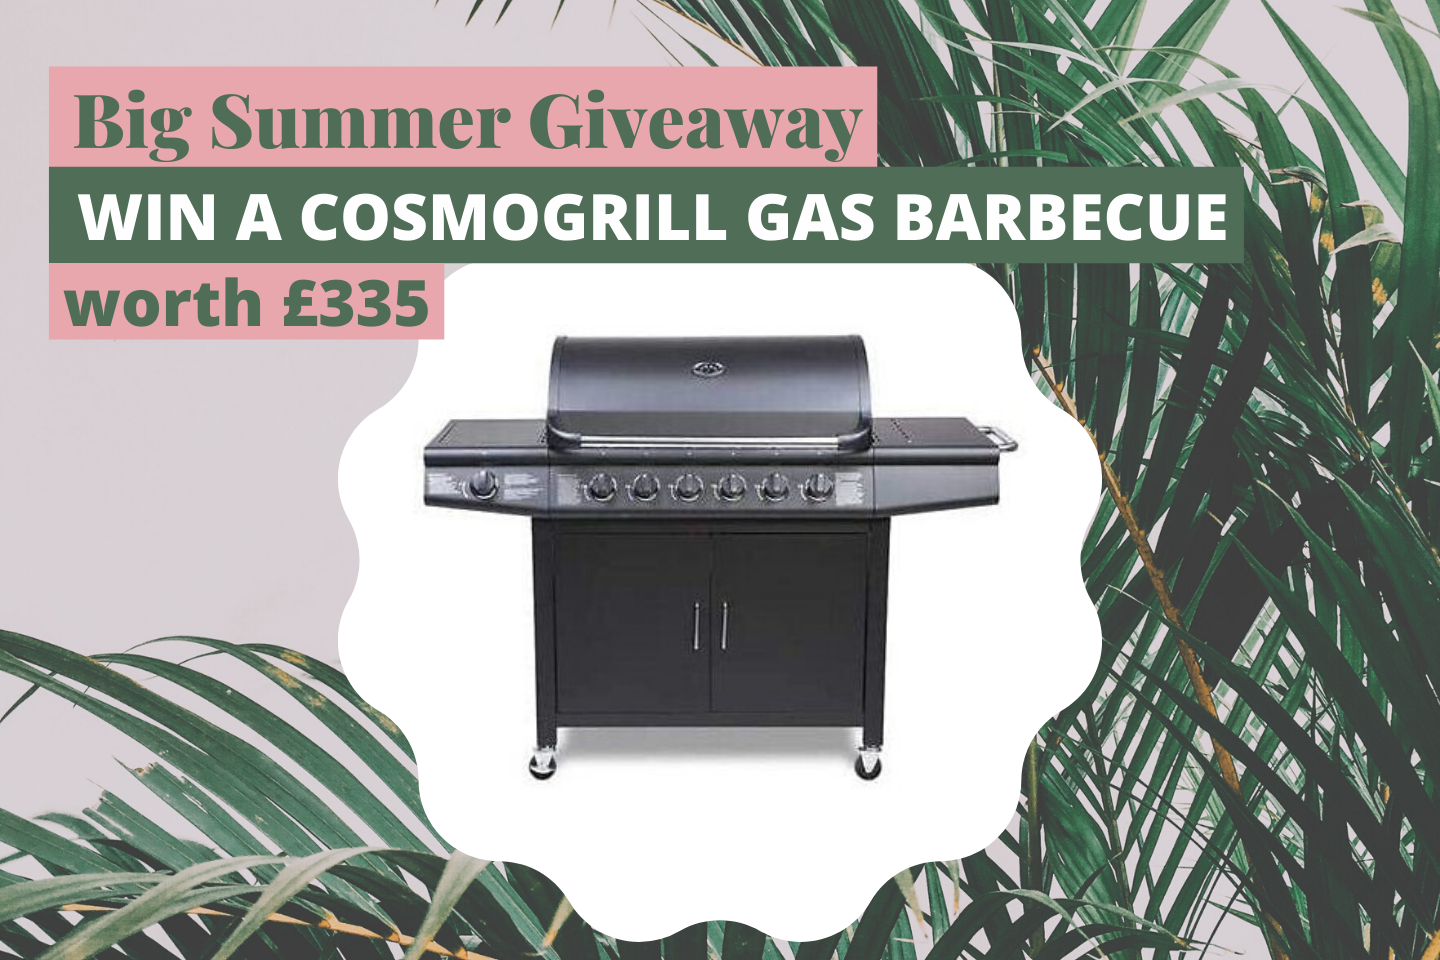 CosmoGrill Barbecue 6+1 Pro Gas Grill BBQ worth £335